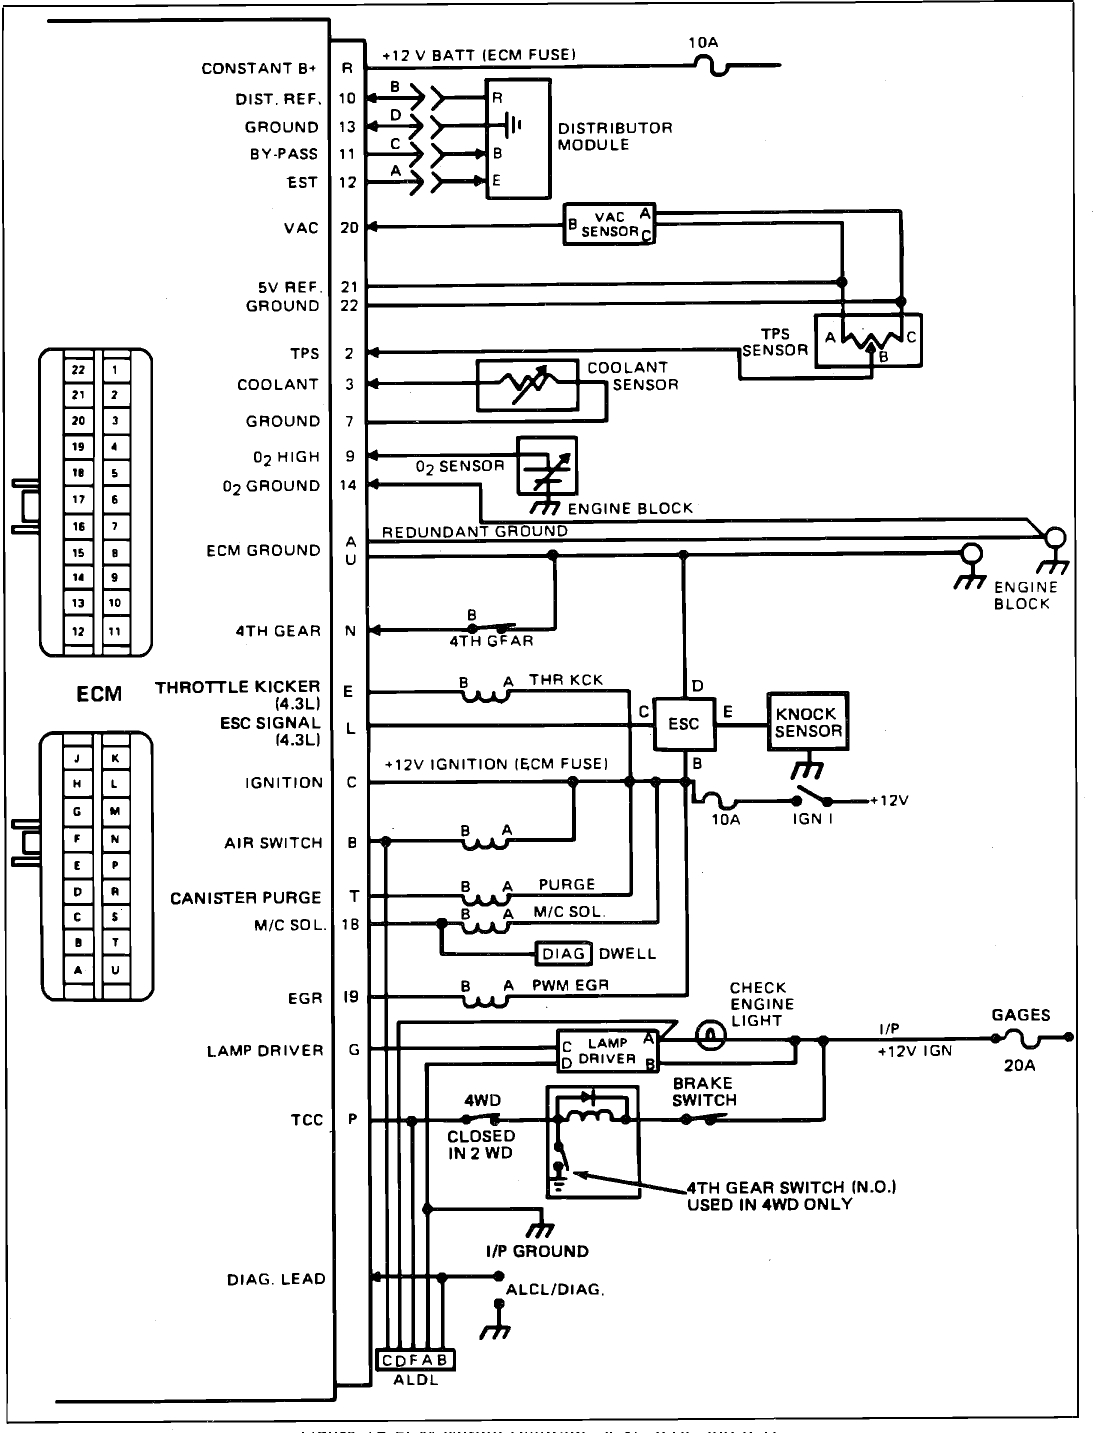 chevrolet g20 wiring diagram wiring diagram source 1992 Toyota Wiring Diagram